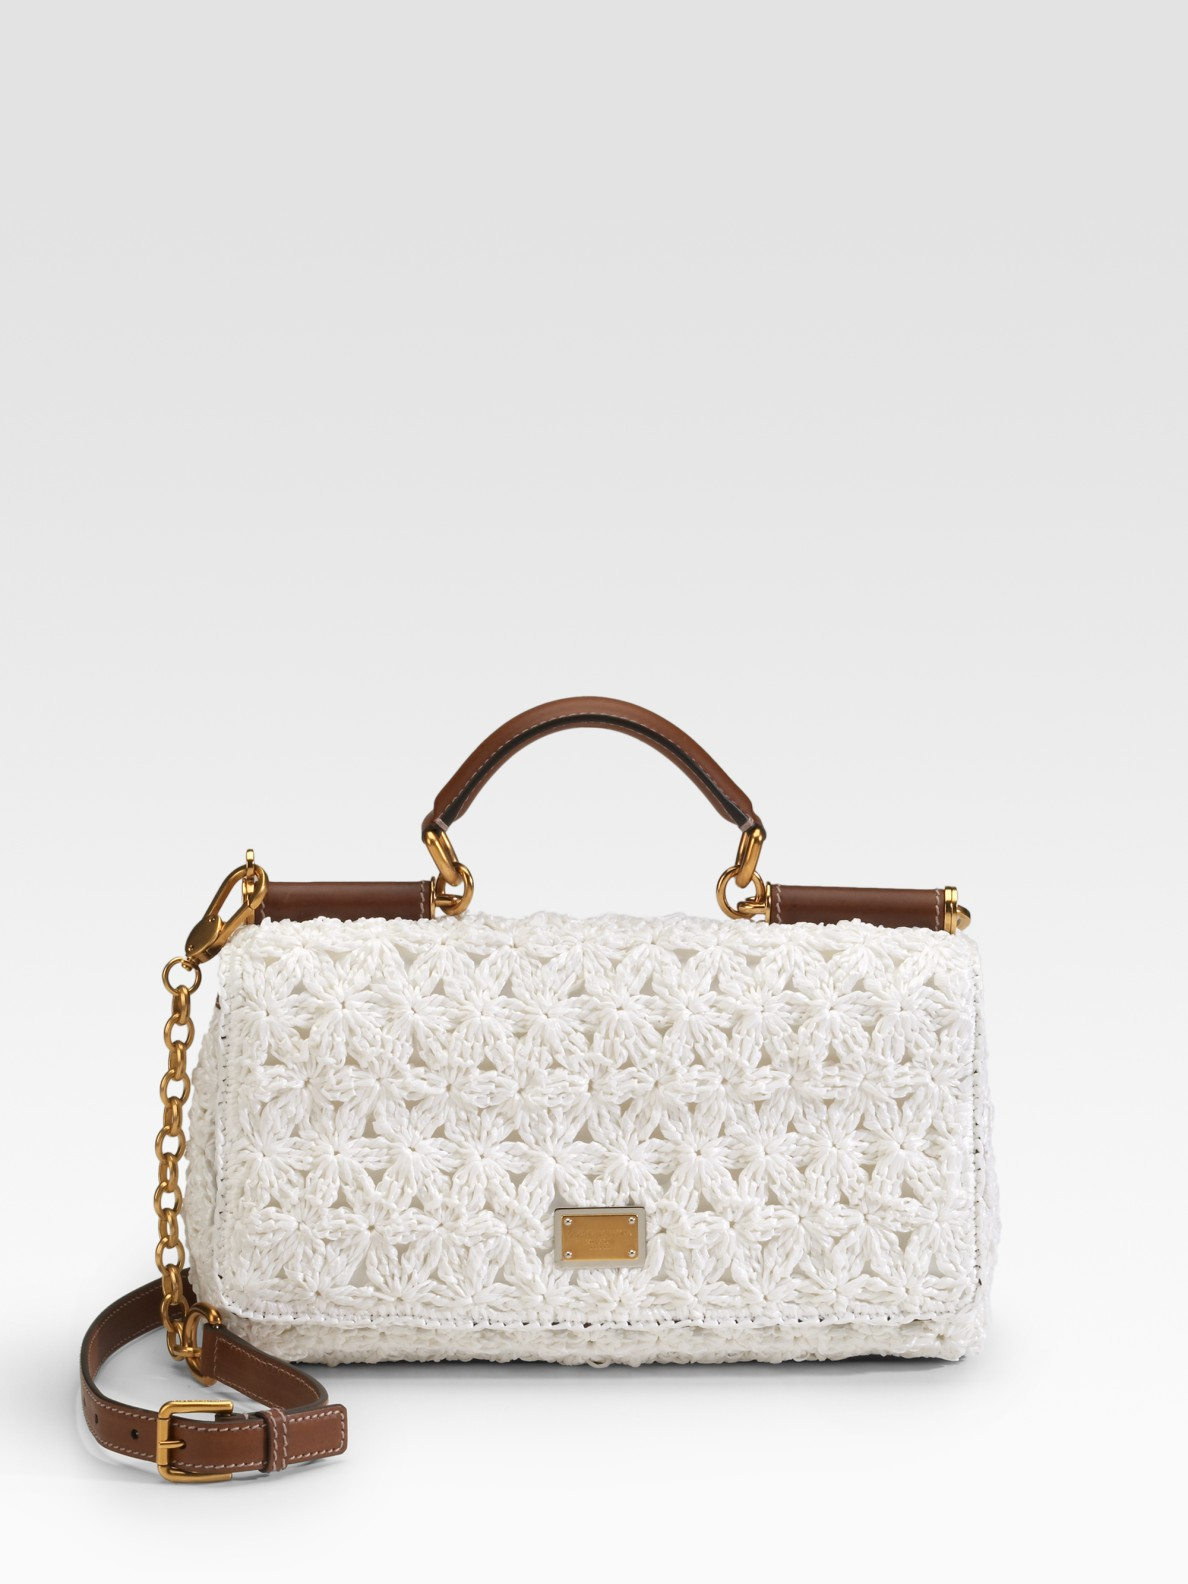 Lyst - Dolce   Gabbana Miss New Sicily Raffia Top Handle Bag in White 0bfdb417afe07